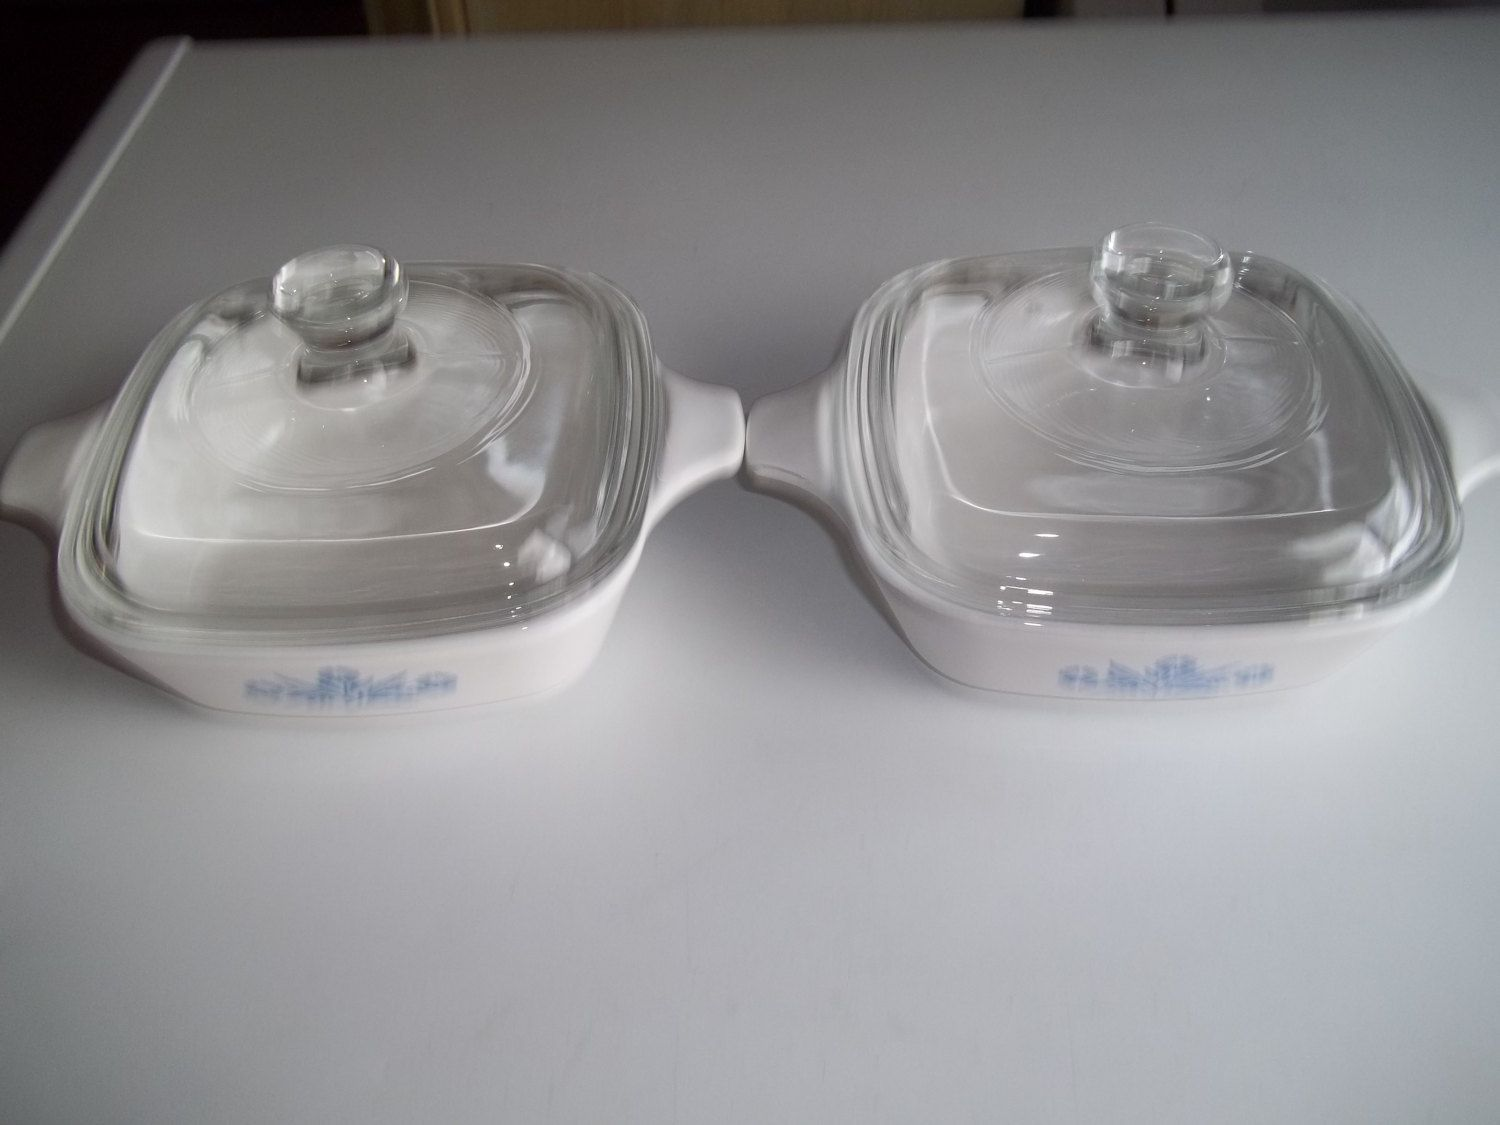 2 Corning Ware Petite Pan P 41 B 1 34 Cup Corn Flower With Lids By